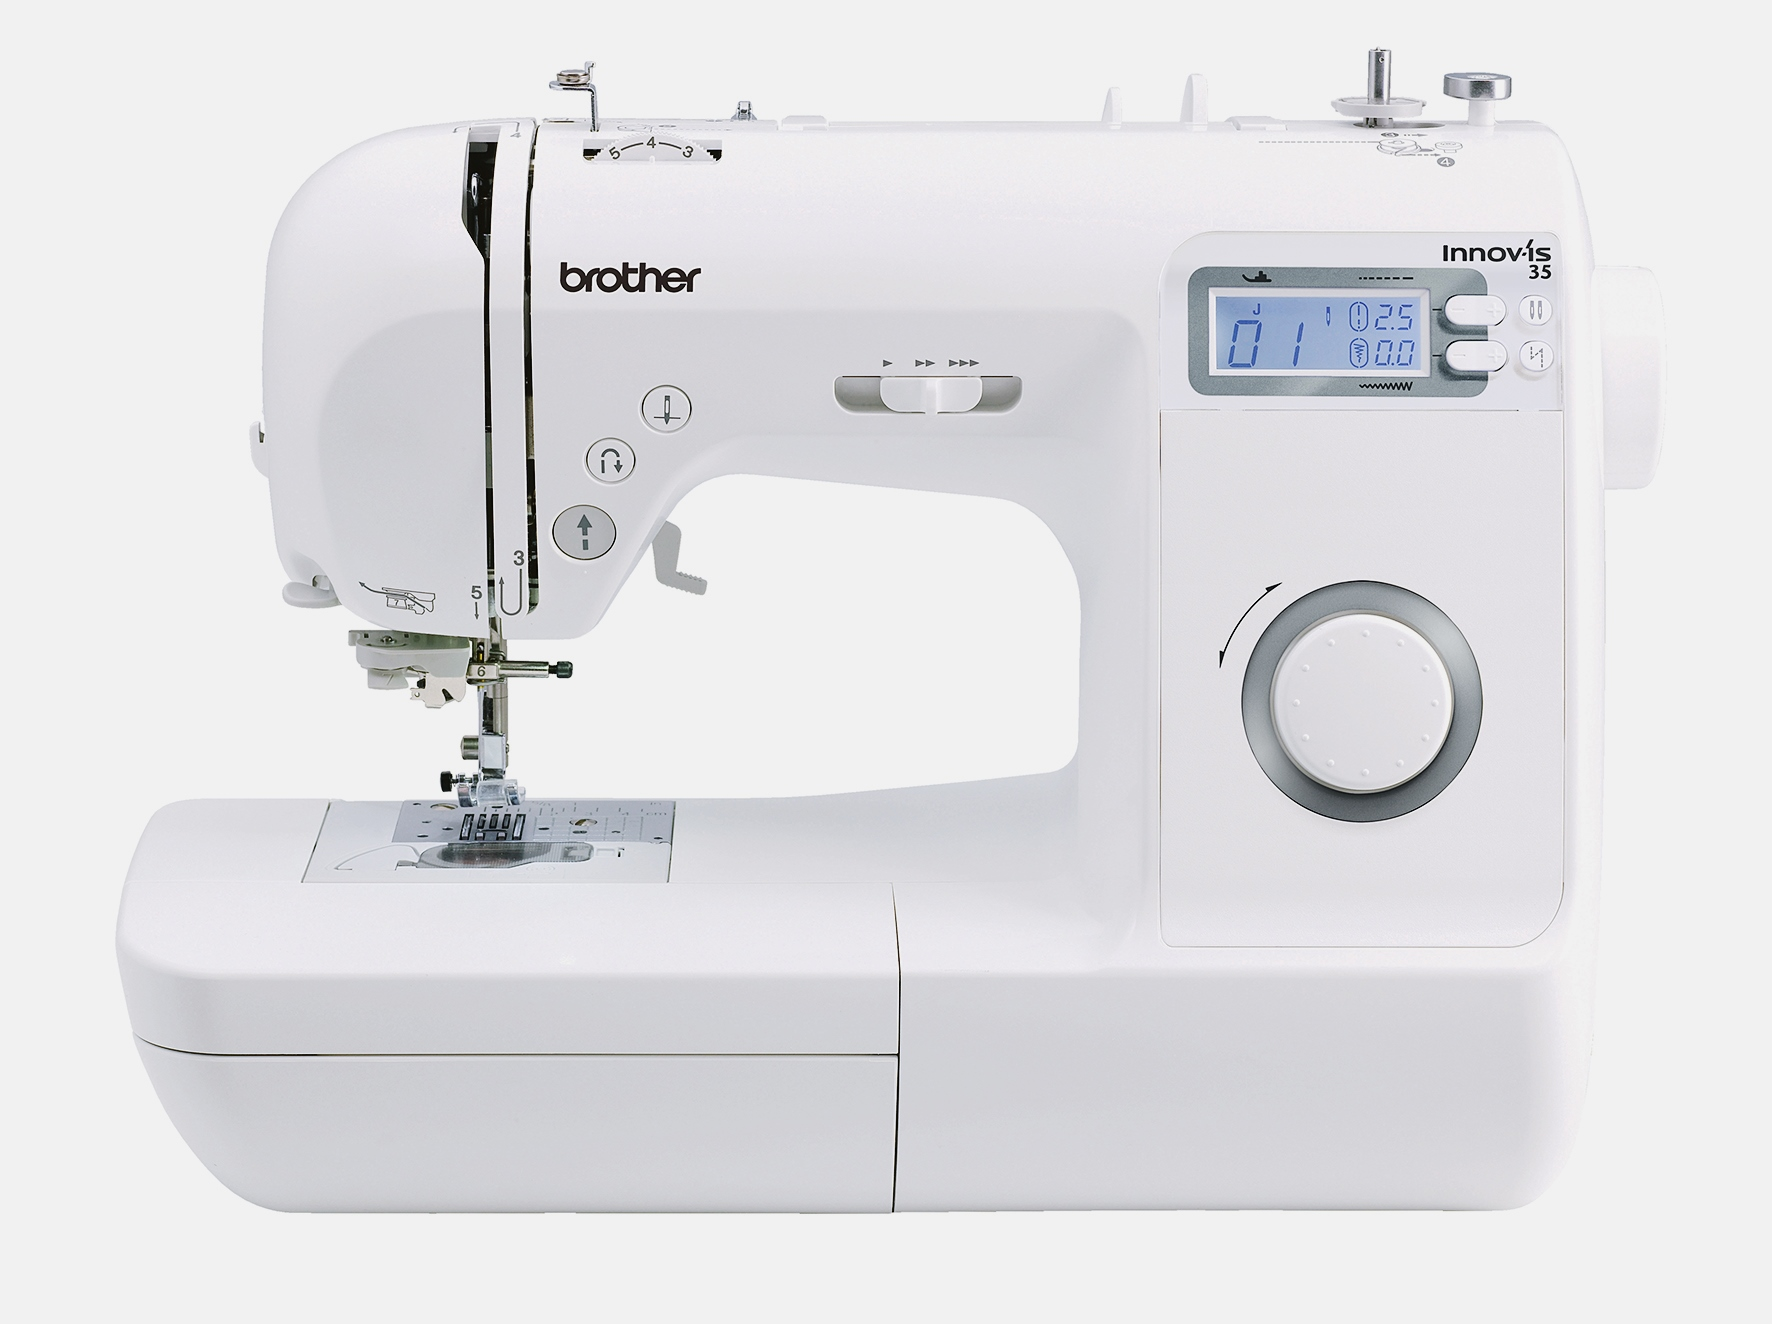 Sewing Machines Parts And Accessories Brother Machine Diagram Car Interior Design Innovis Nv35